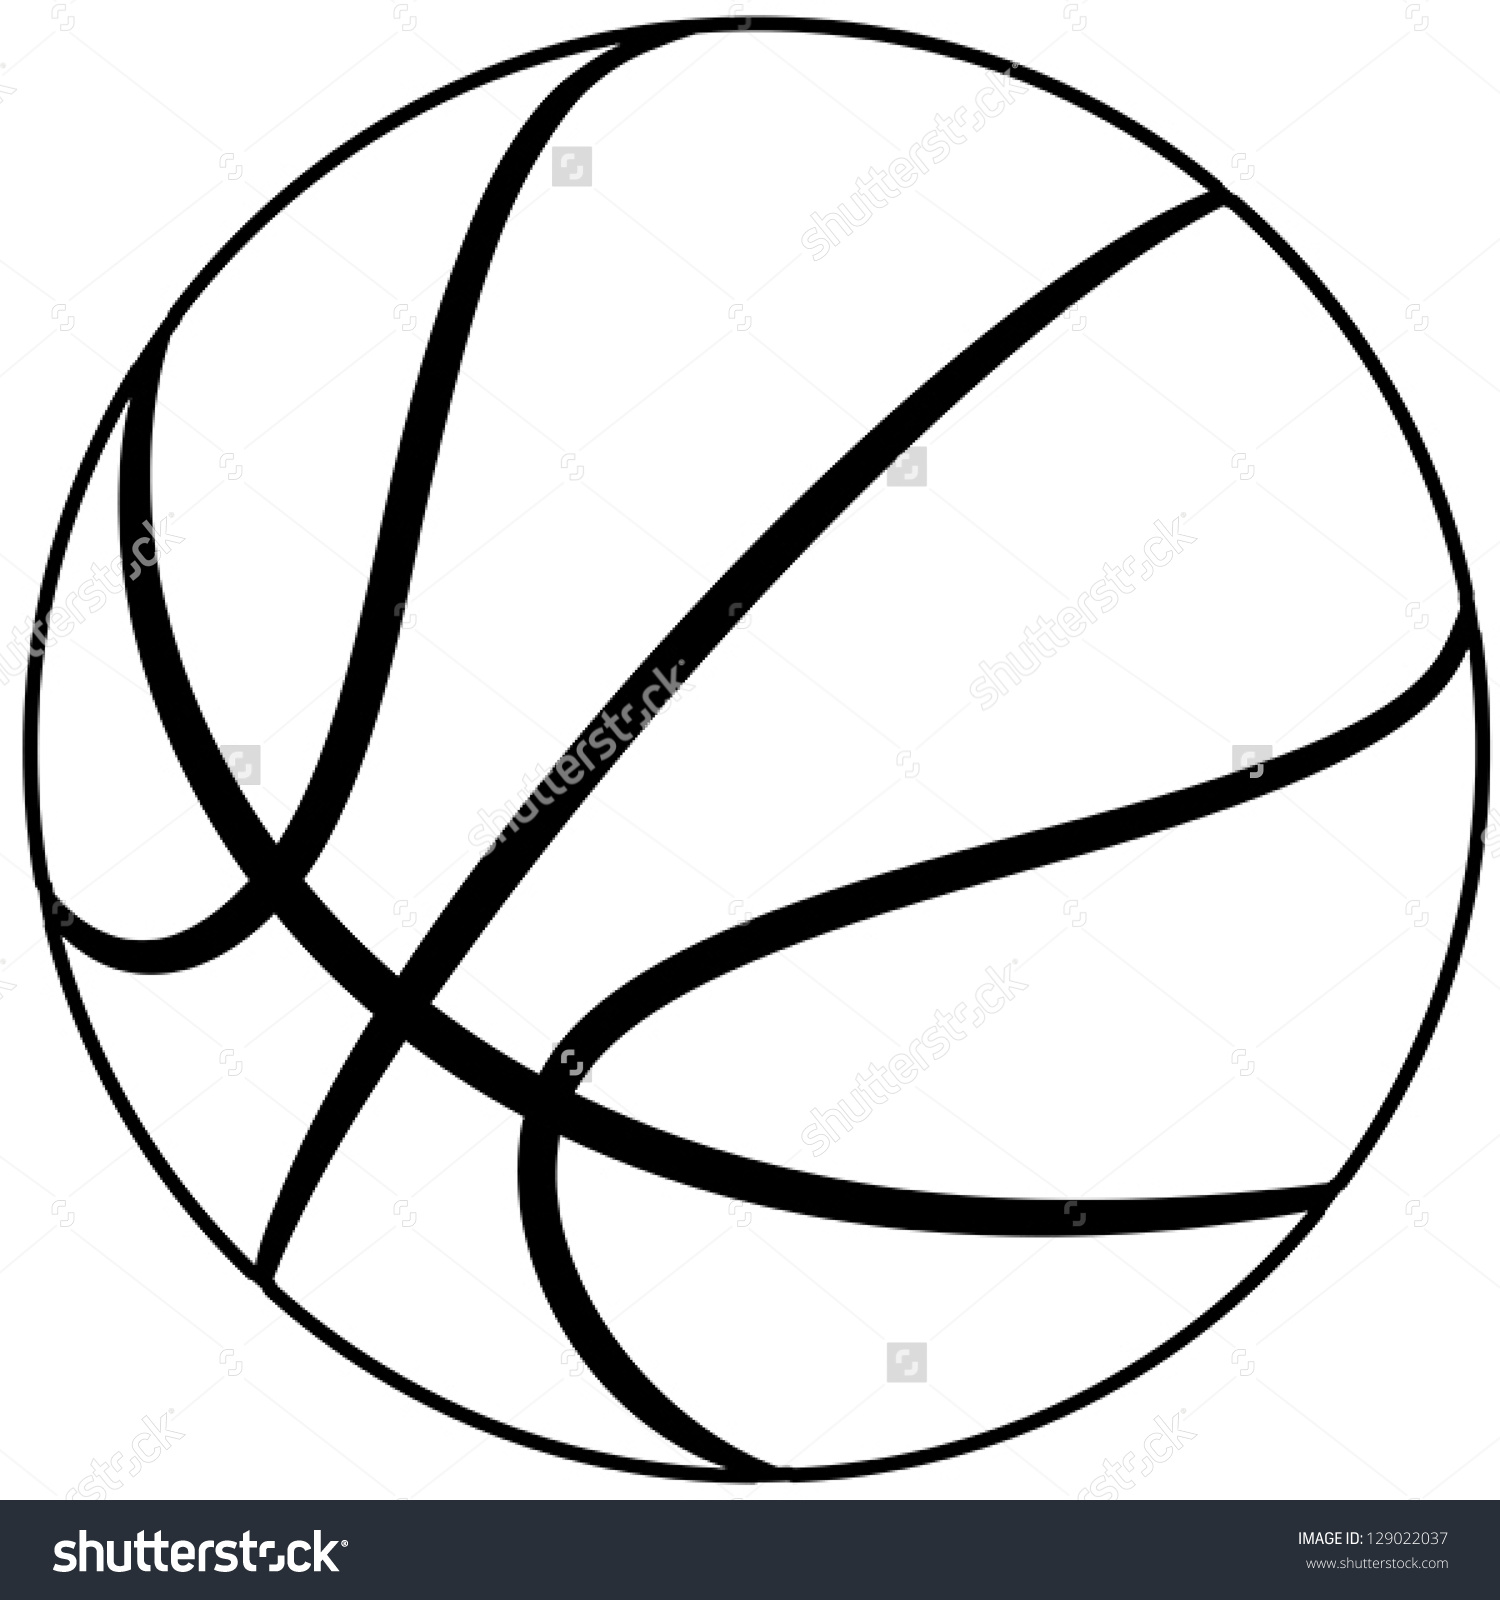 1500x1600 Basketball Outline Clip Art Many Interesting Cliparts